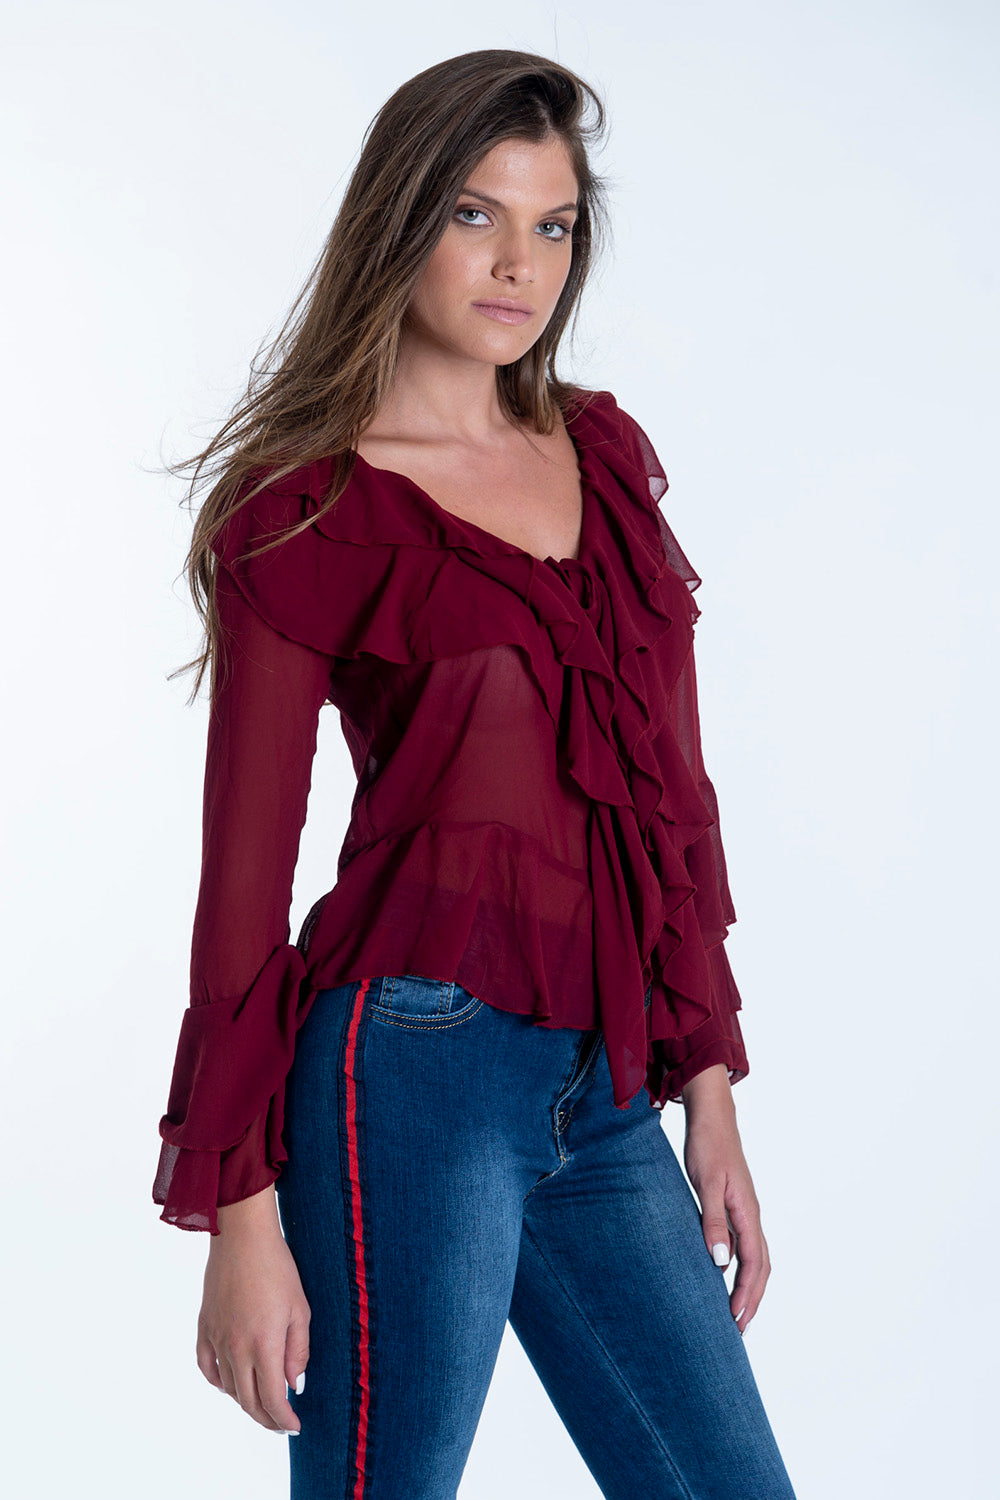 Bojo see through chiffon top with frills